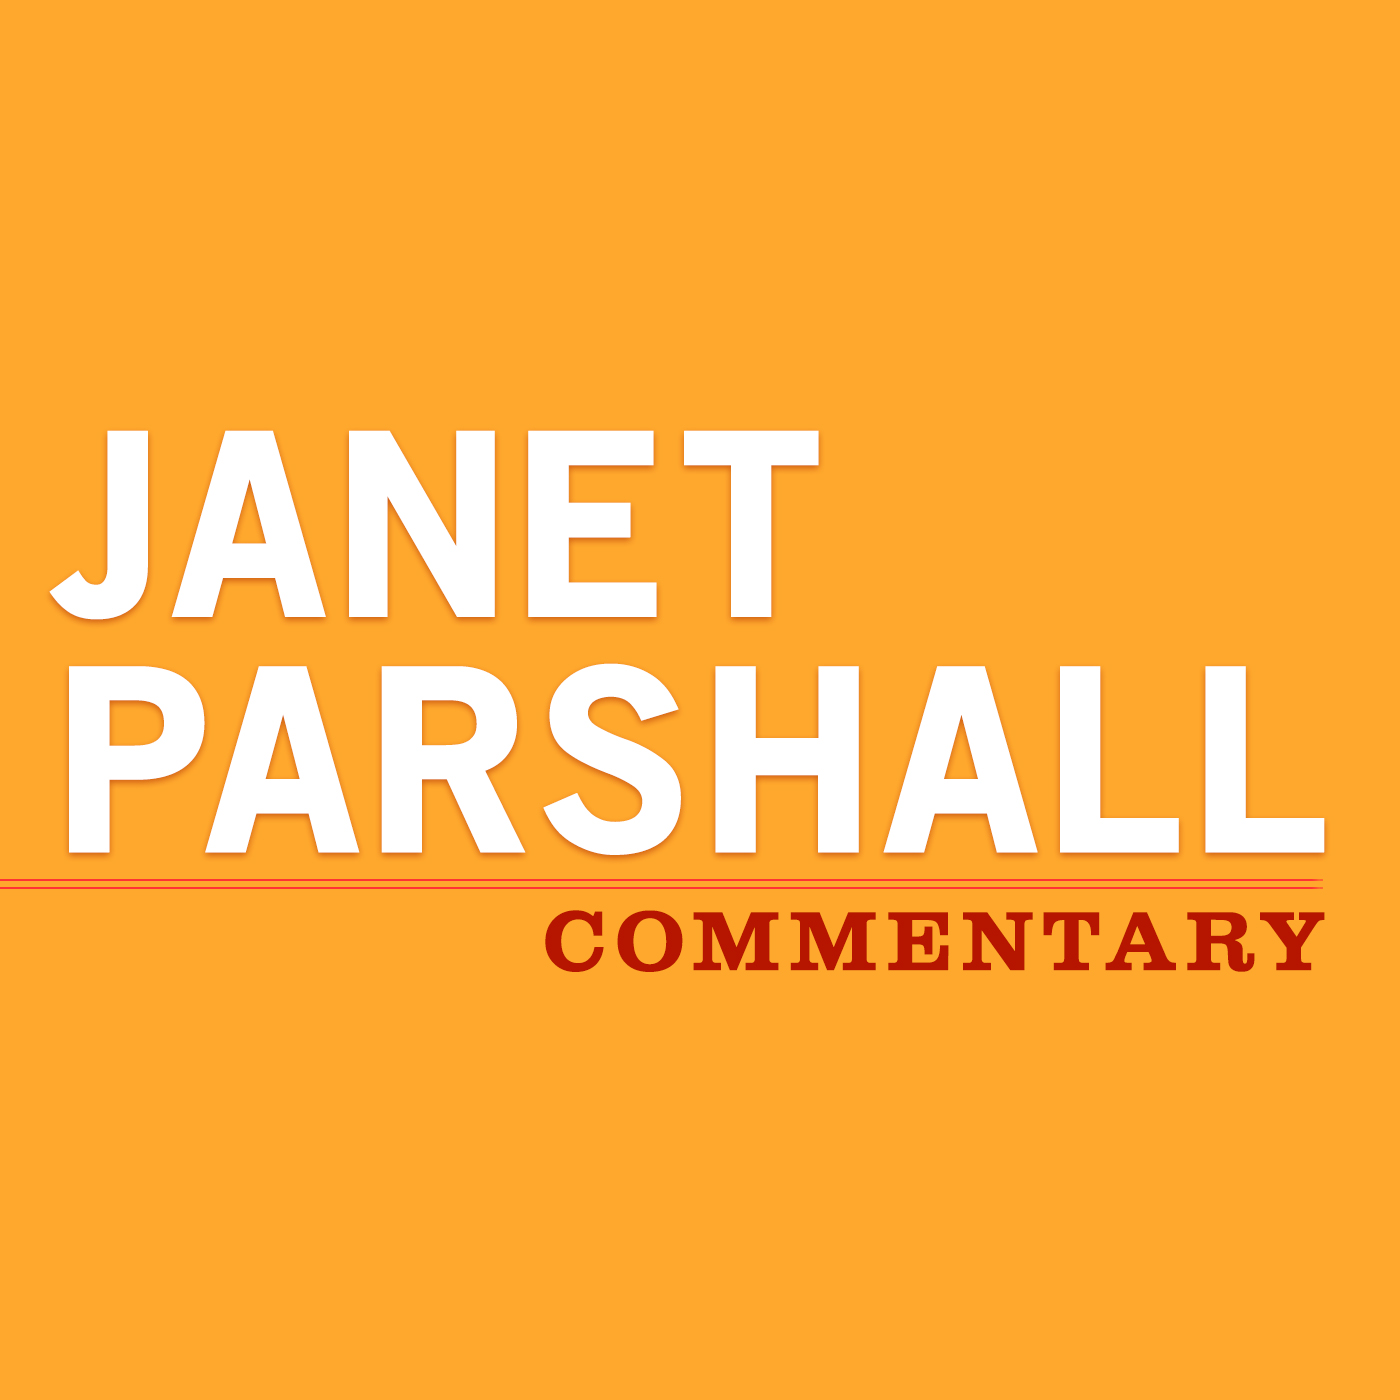 Janet Parshall Commentary